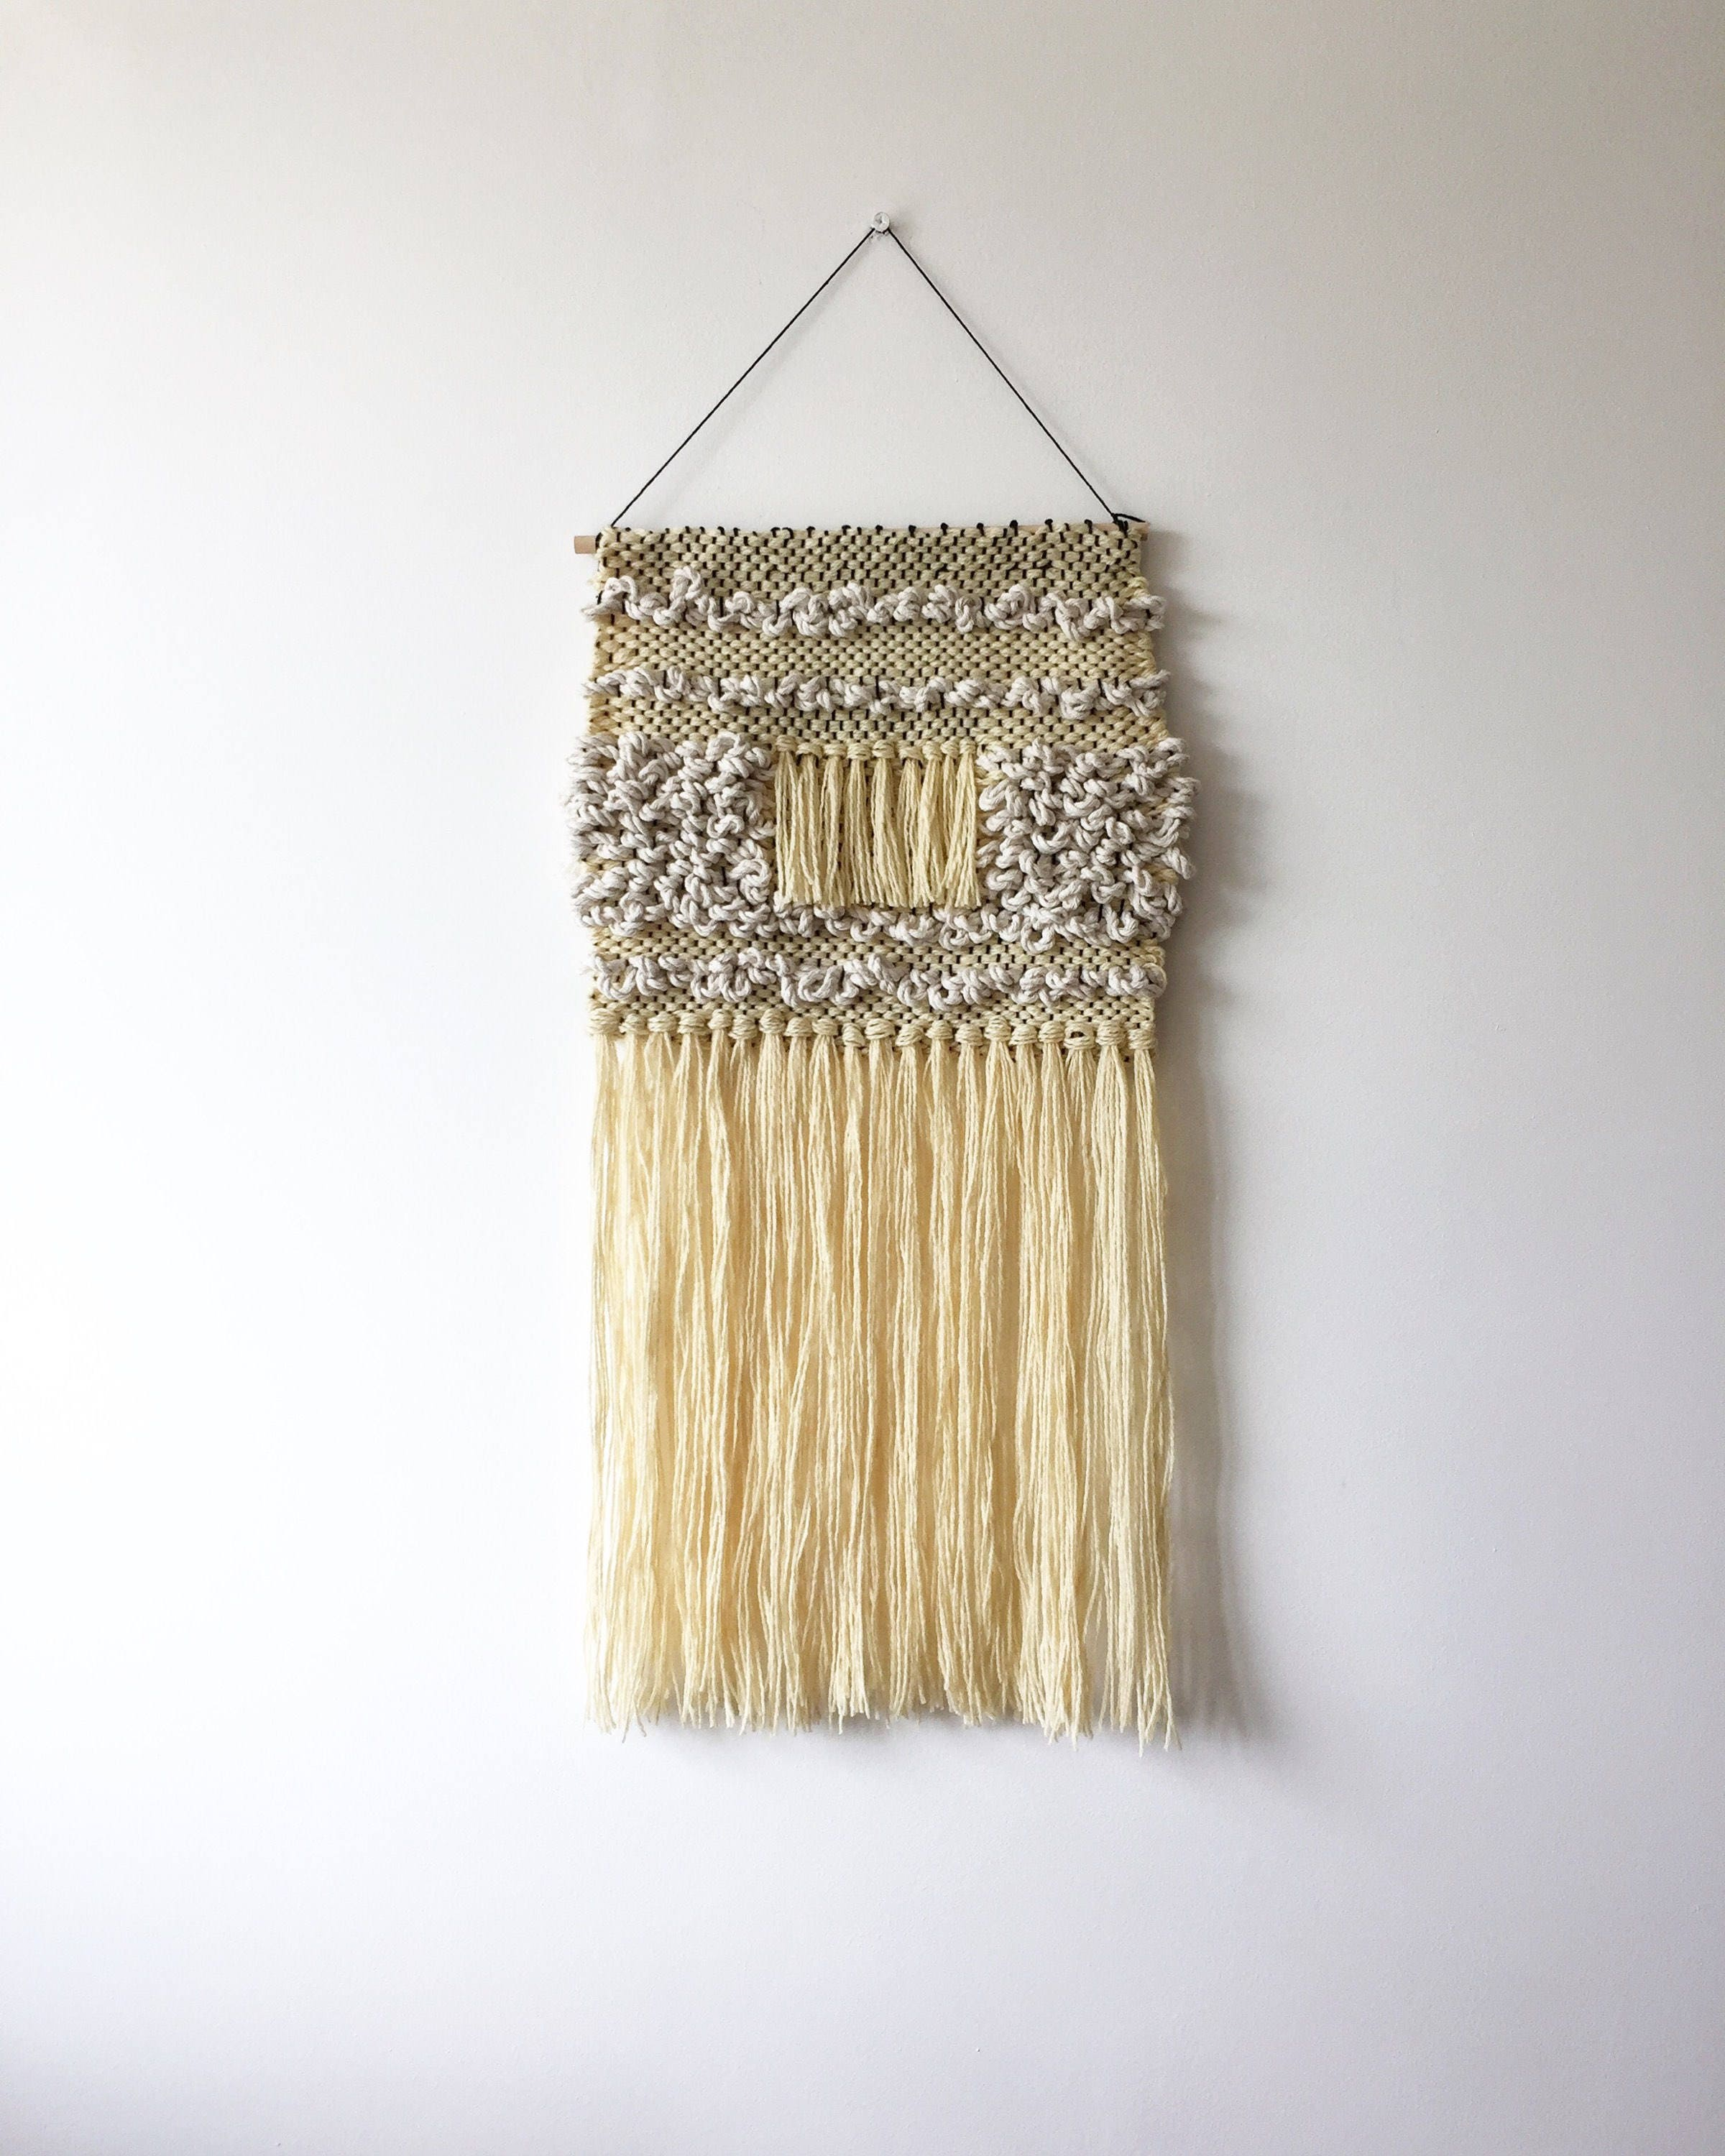 Woven Wall Hanging - Rotterdam - Neutral Beige Wall Hanging Woven ...